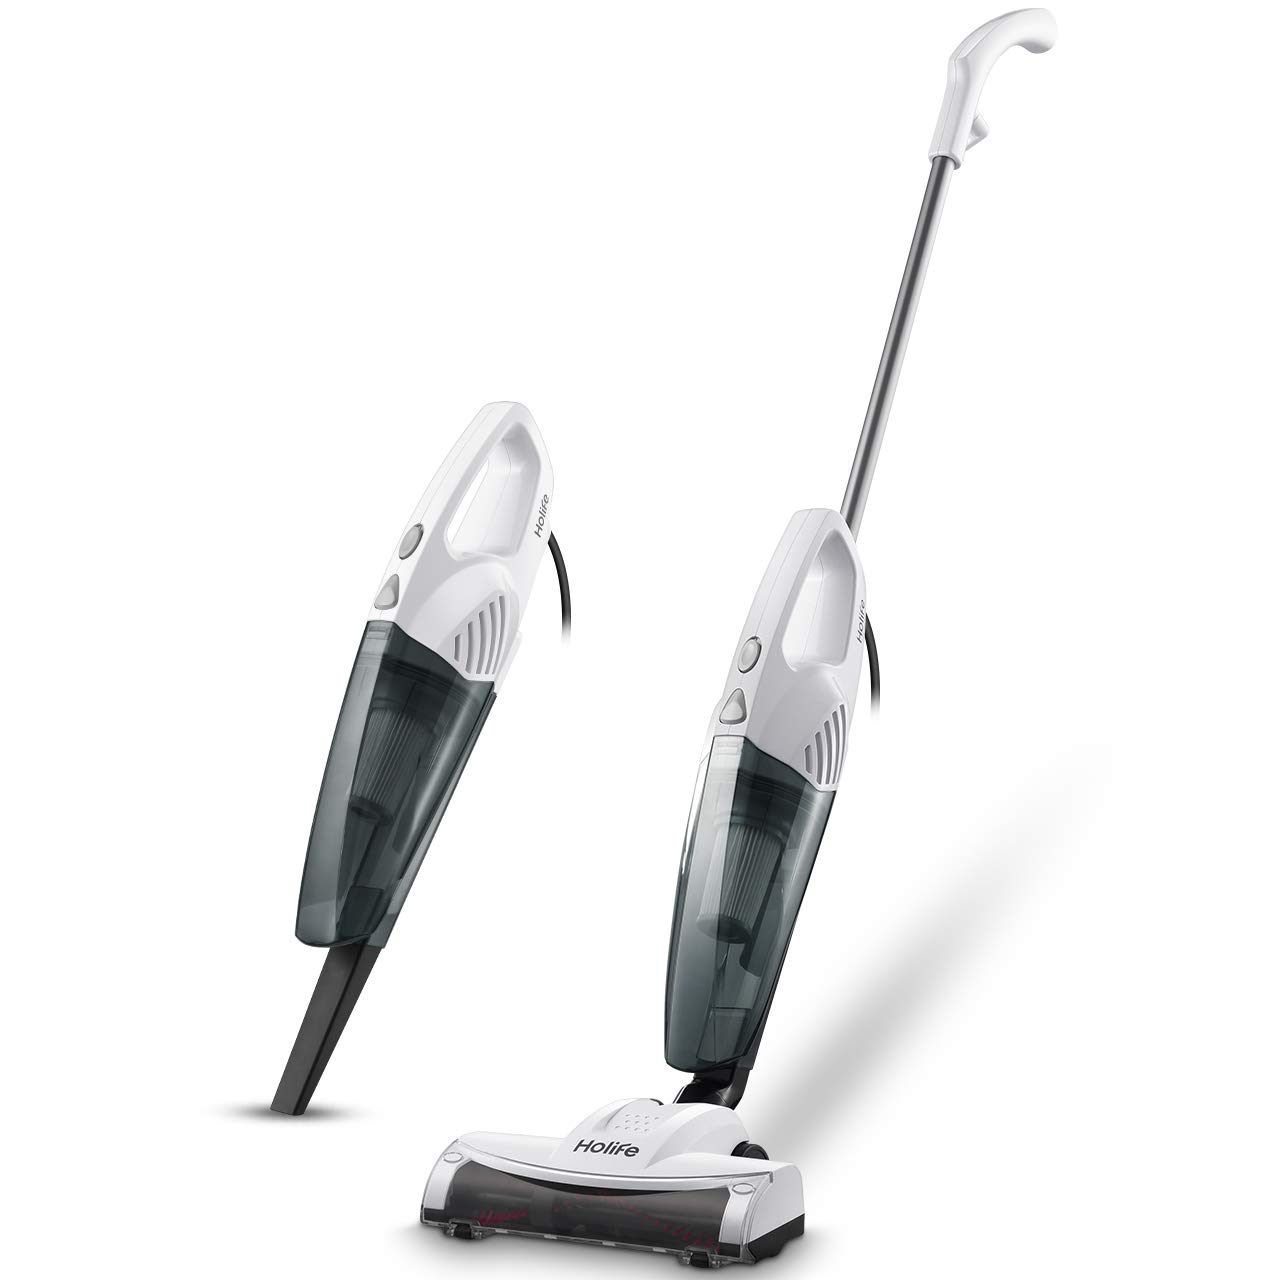 Holife Stick Vacuum Corded, 2 in 1 Handheld Vacuum Cleaner with 15KPA Powerful Suction, Rolling Brush, HEPA Filter